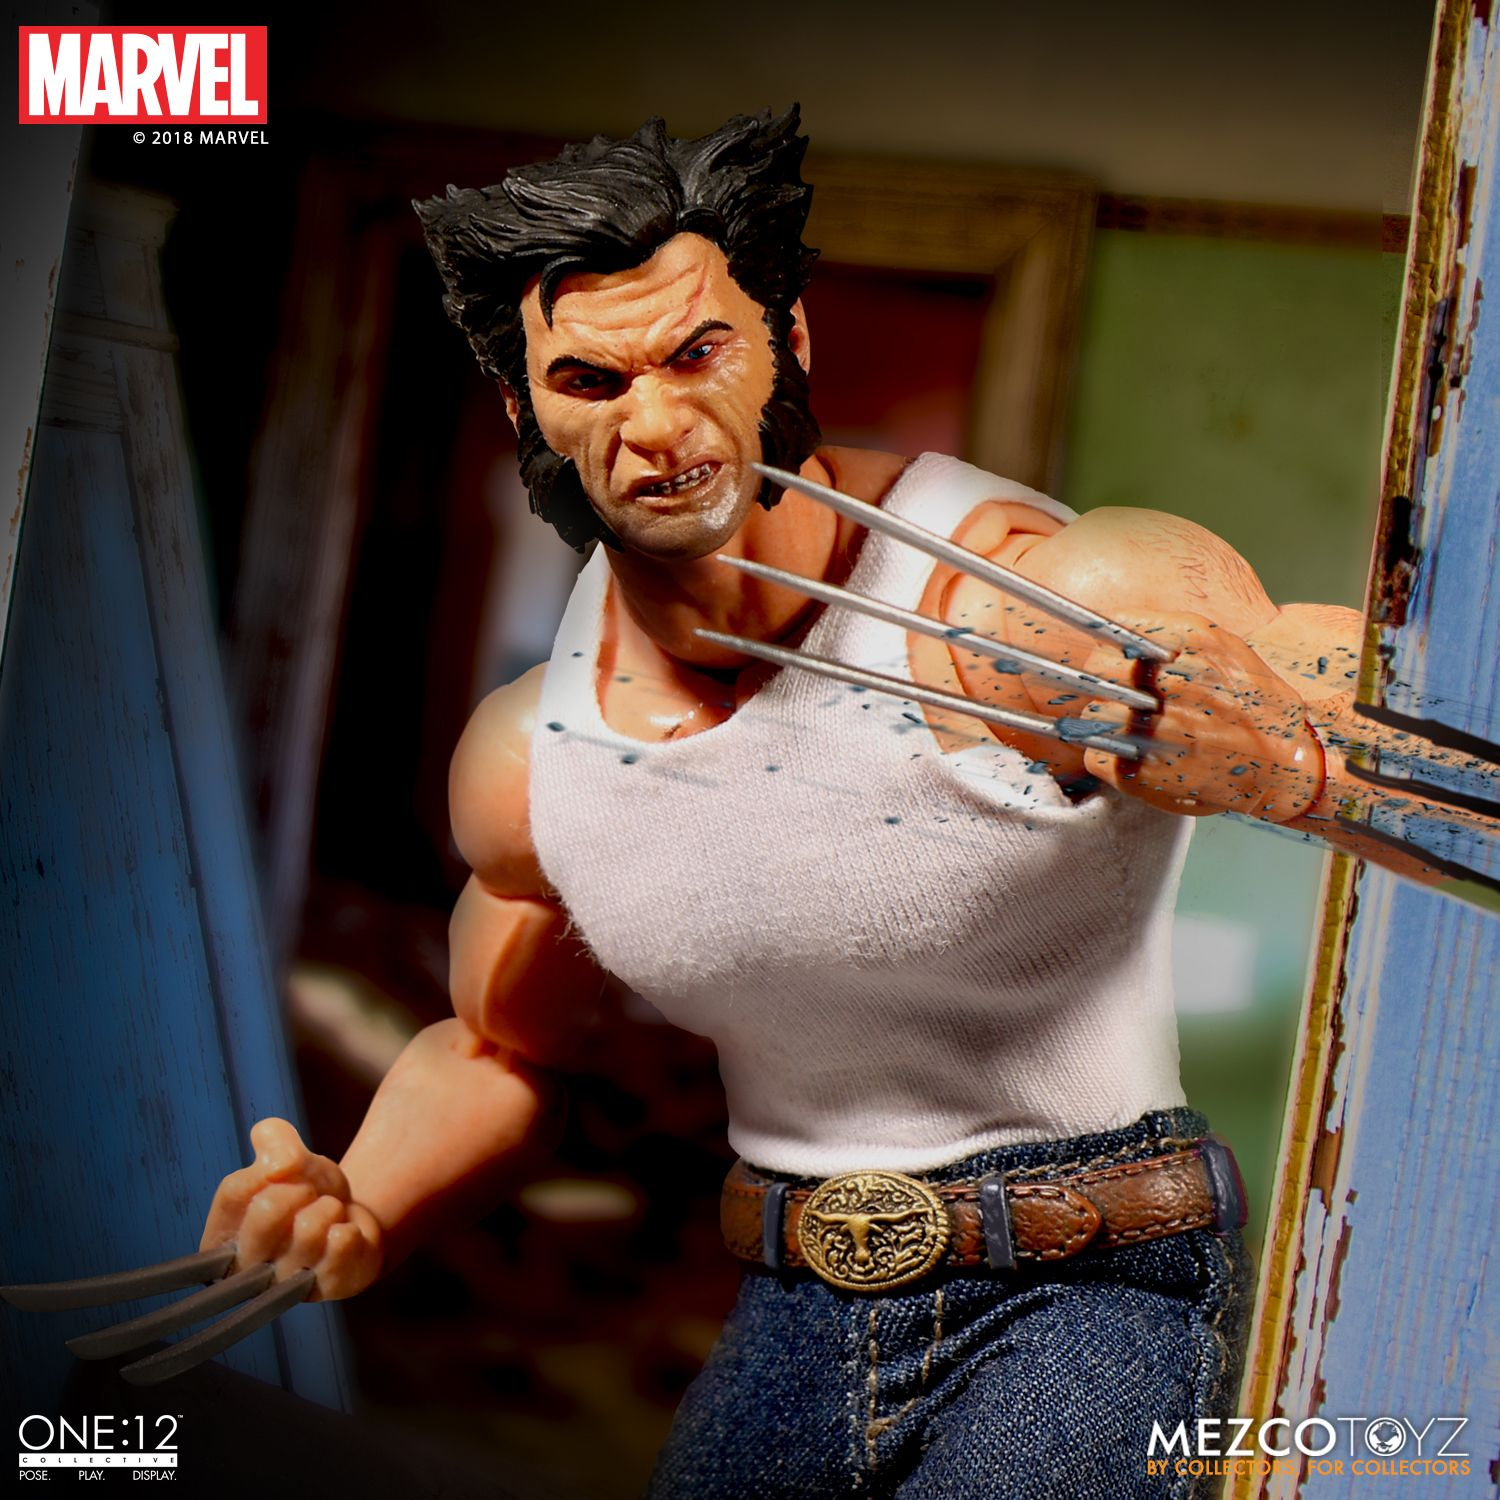 MEZCO WOLVERINE X-Men one 12 collective 6 inch Figure IN STOCK SHIPPING NOW